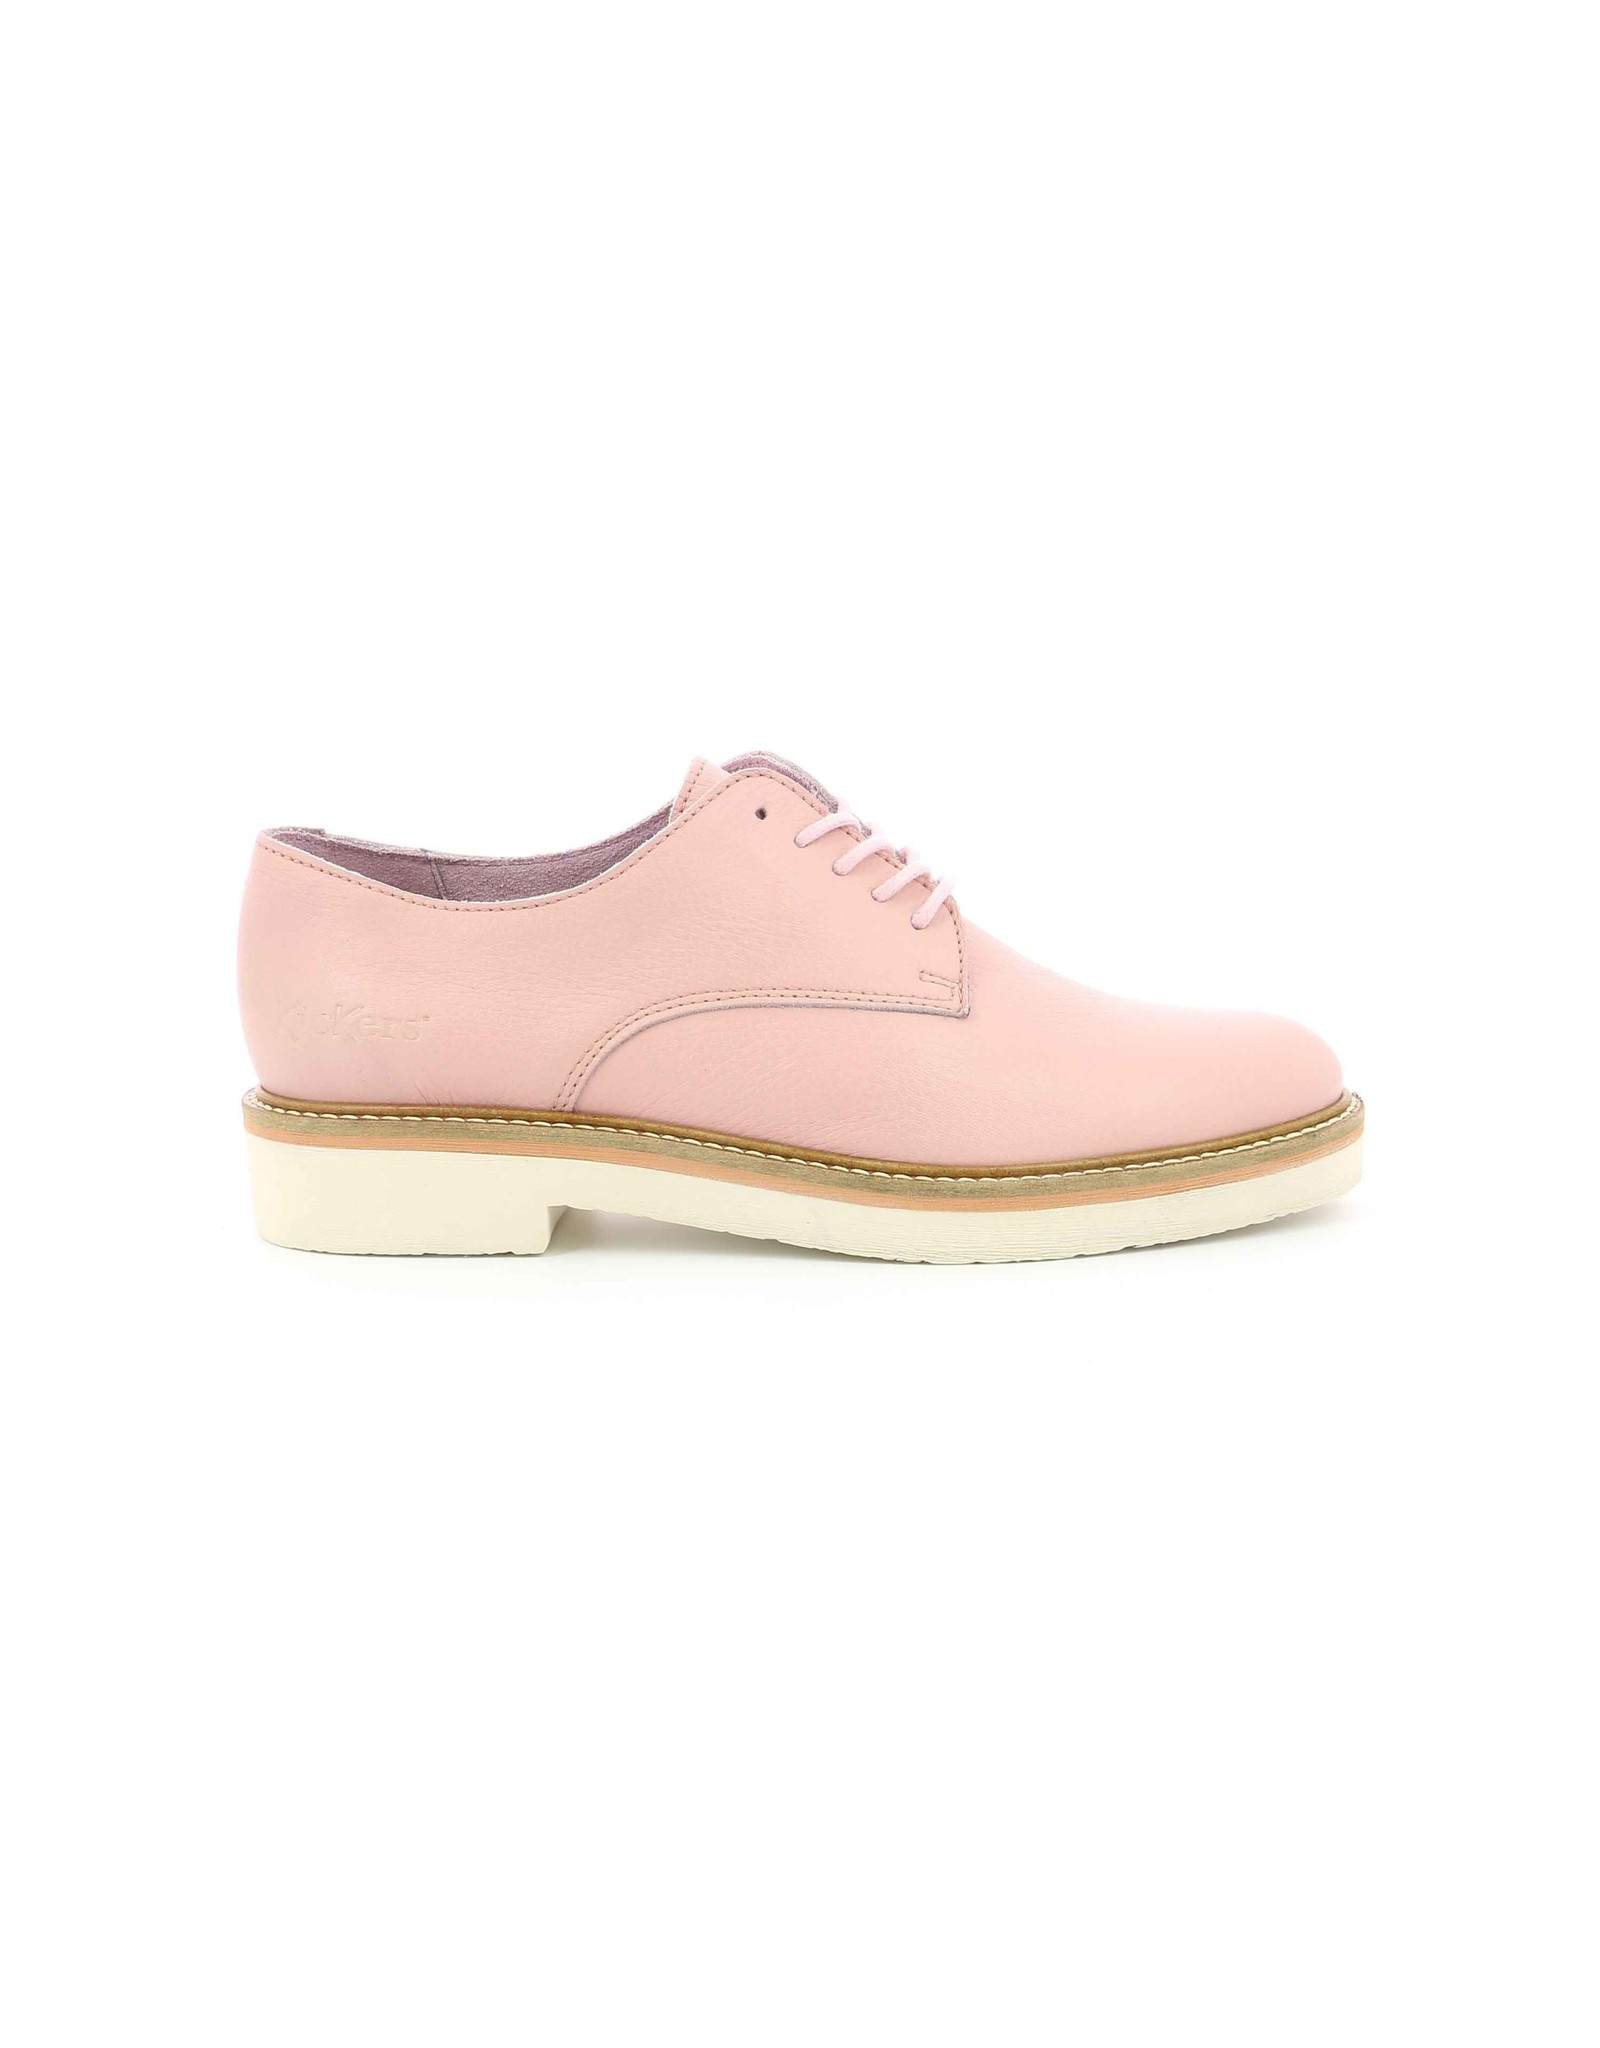 KICKERS OXFORK ROSE K2097R 739478-50+13